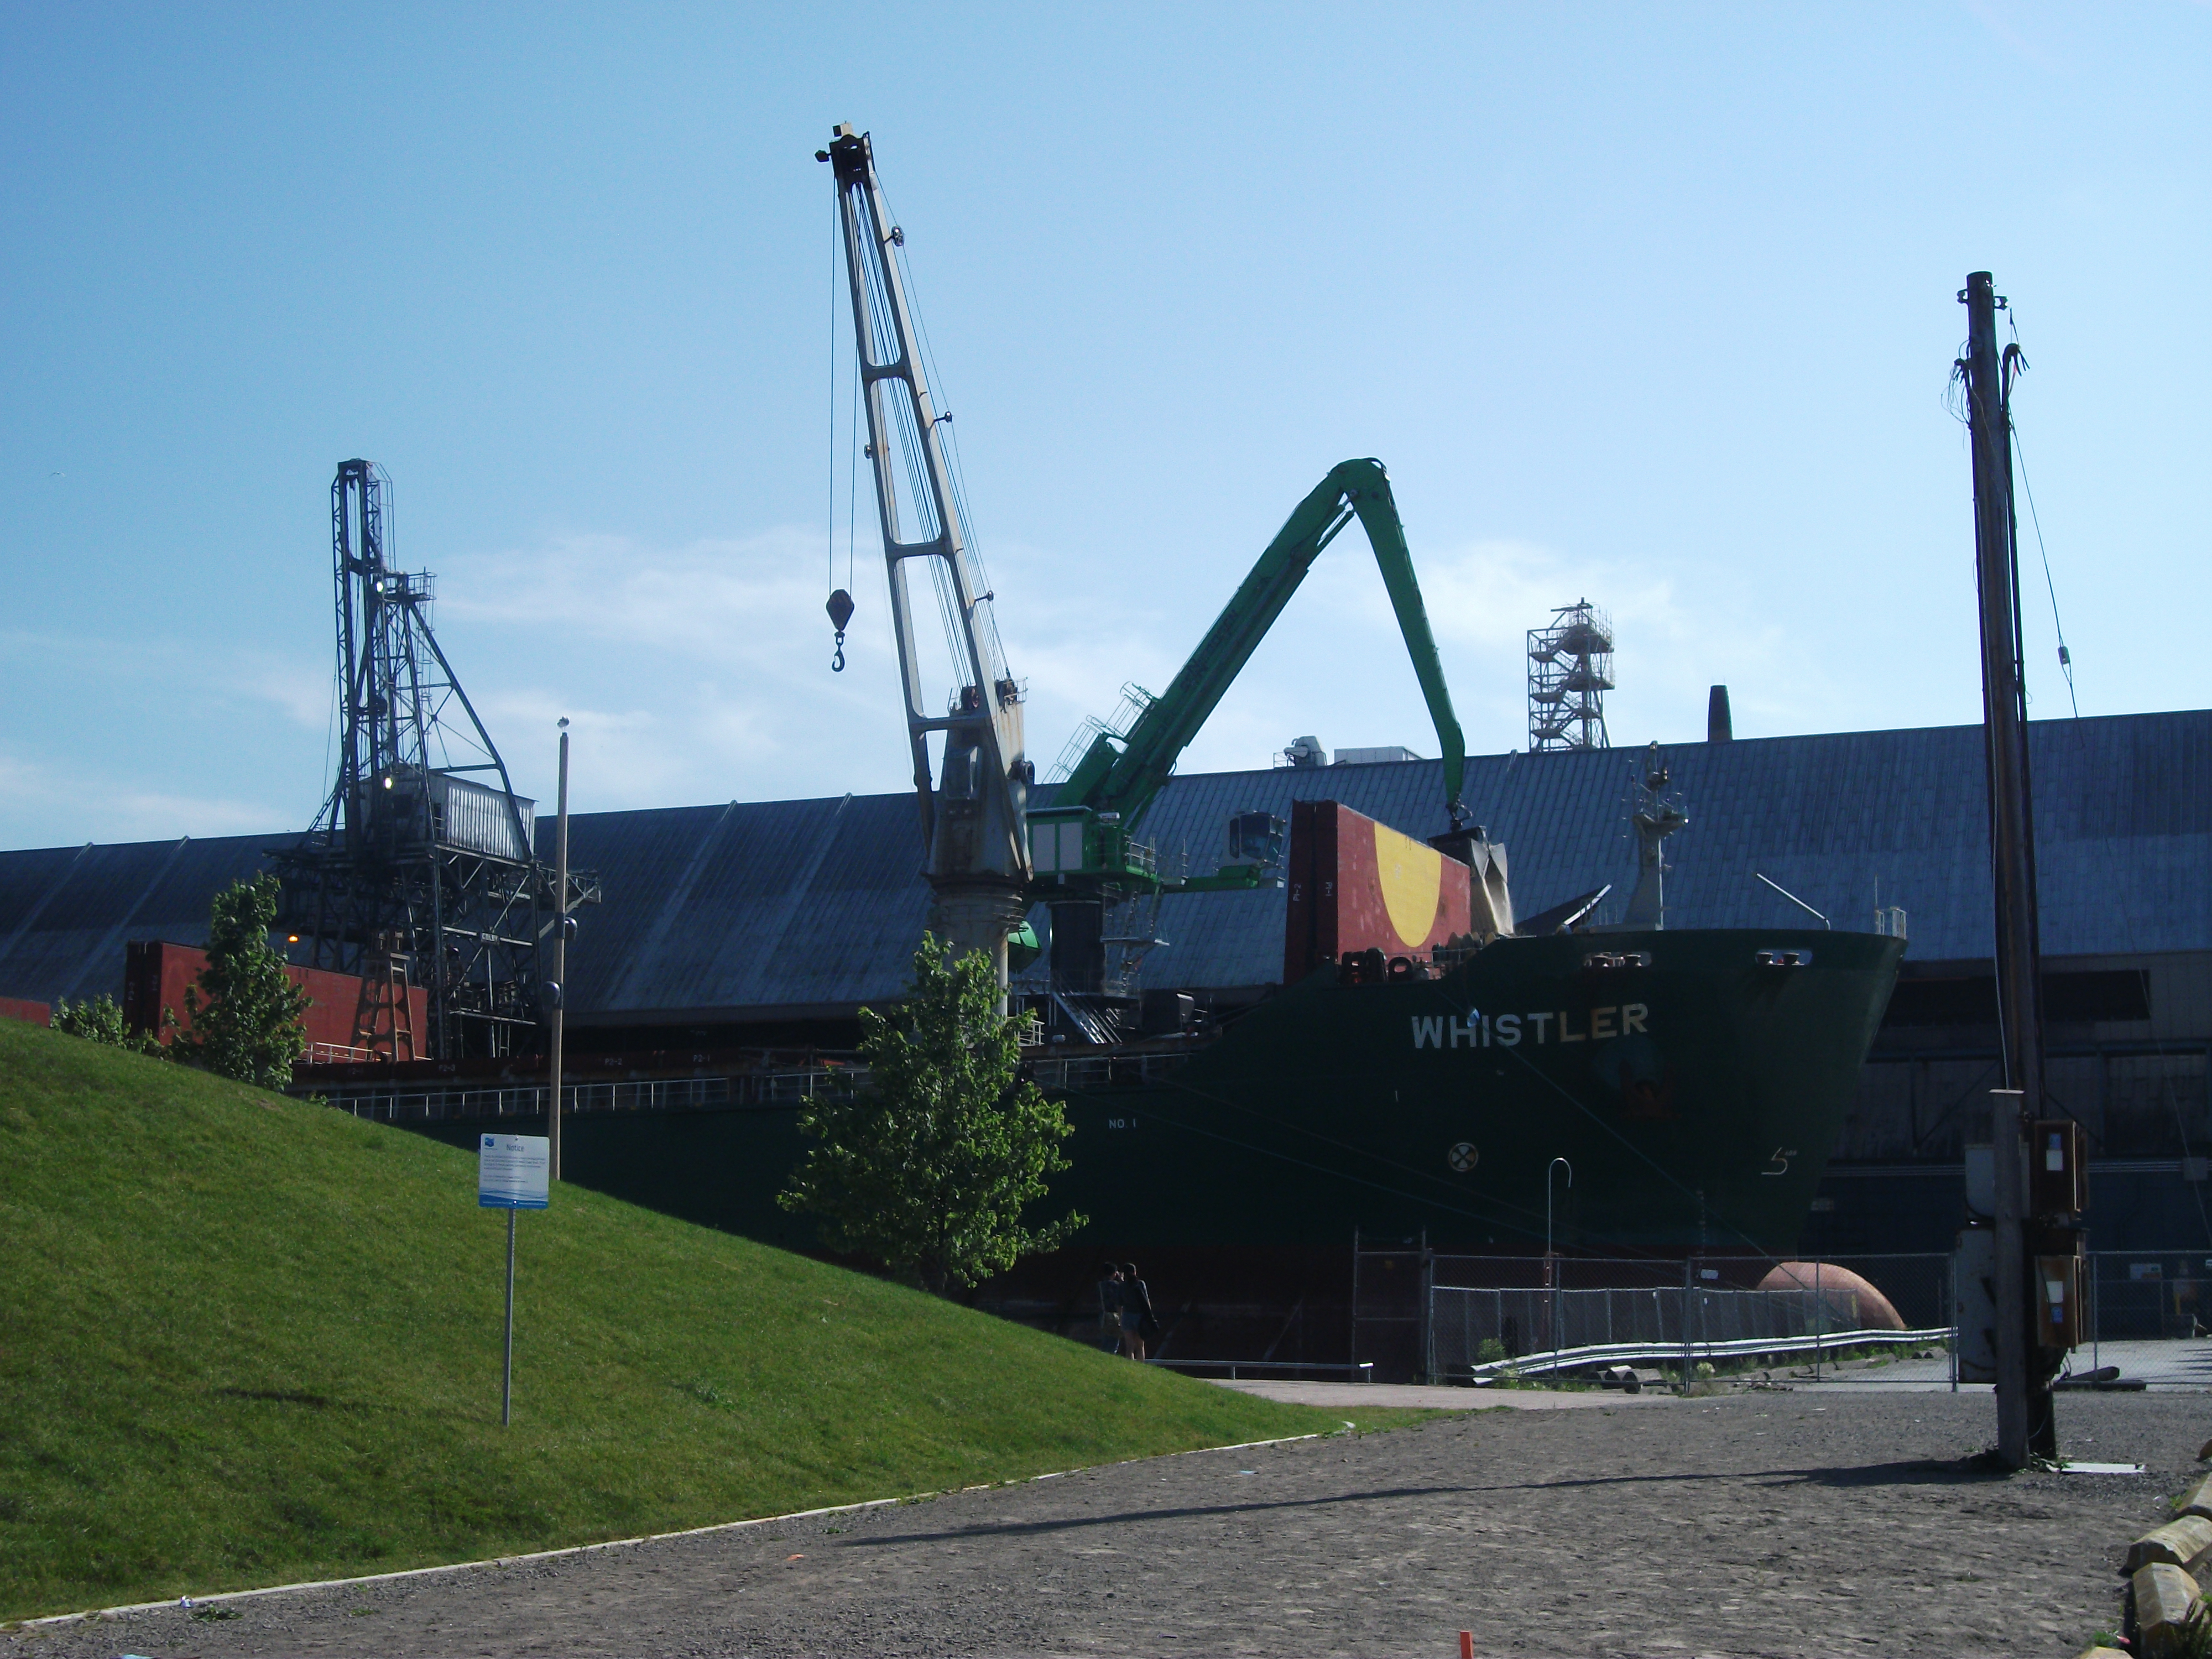 File:Bulk carrier Whistler, full of sugar being unloaded at